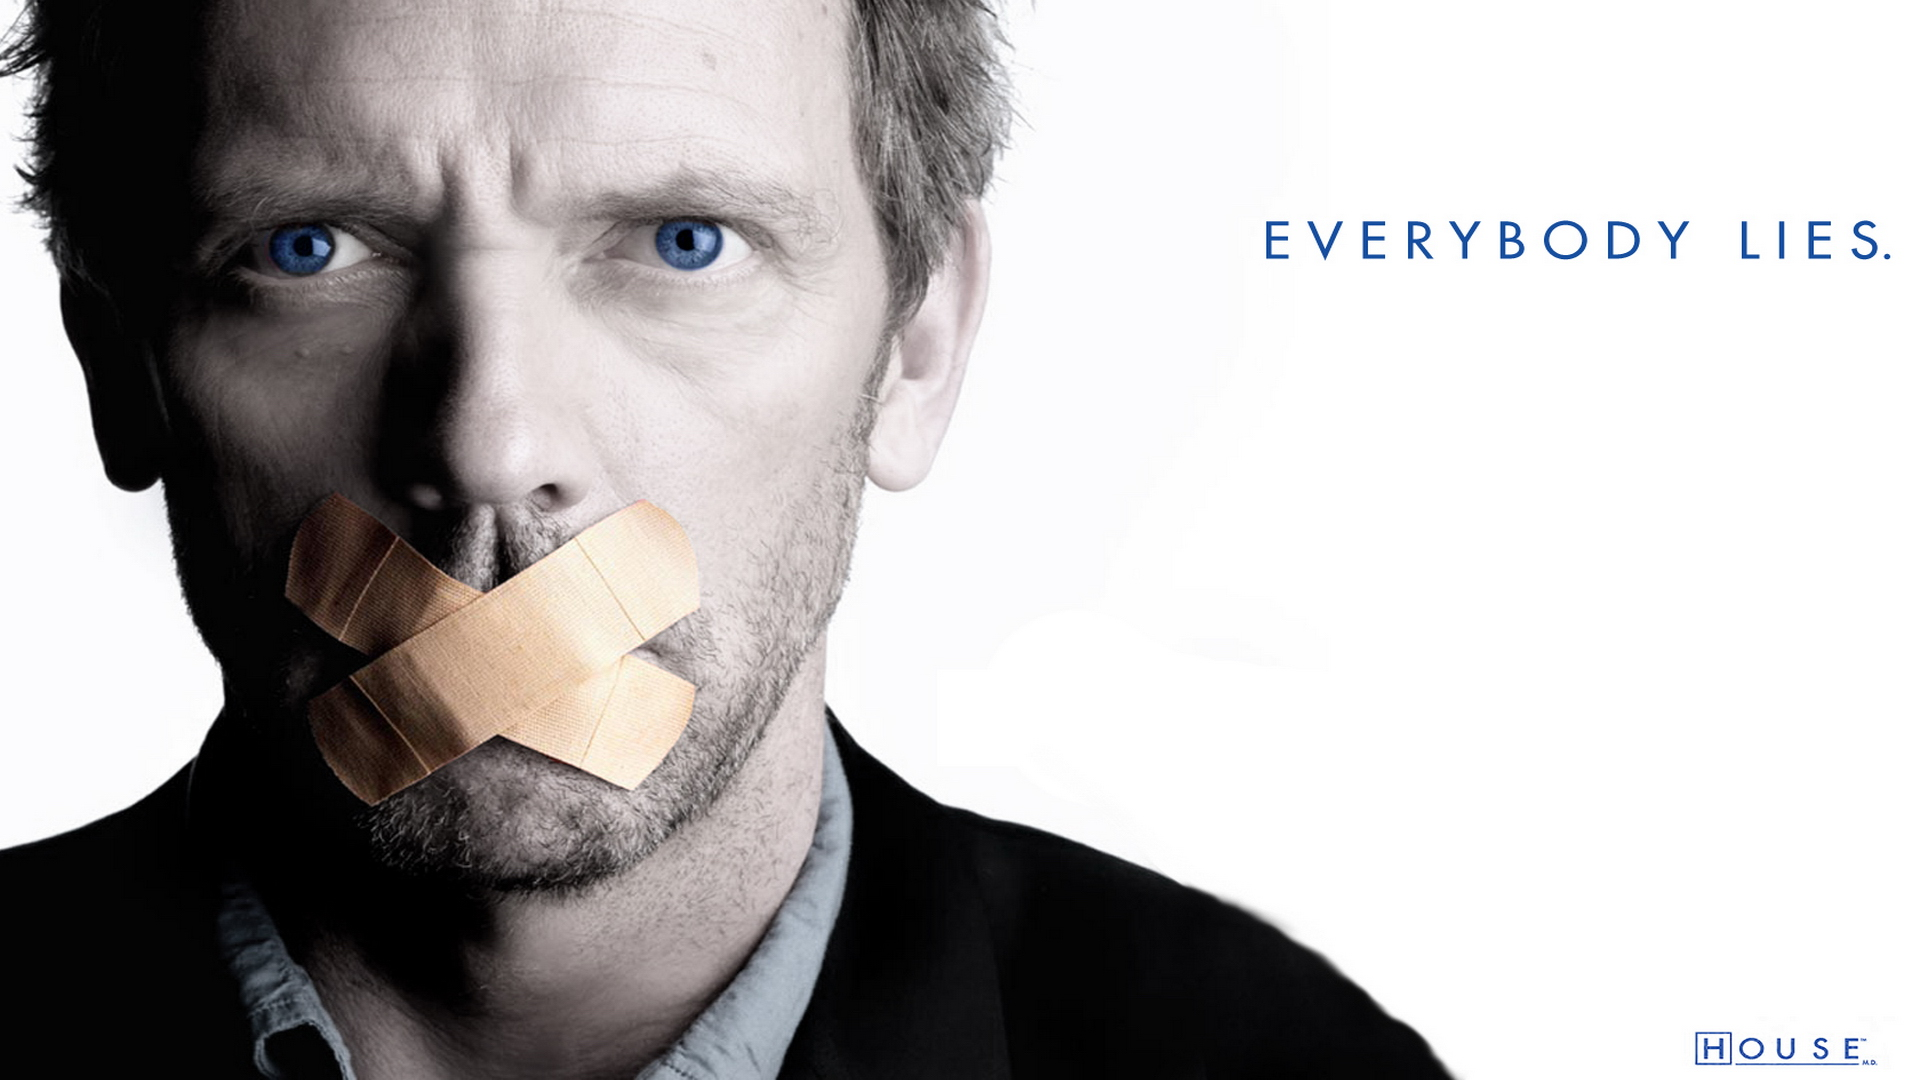 house md wallpaper 62 HD Desktop Wallpapers 1920x1080